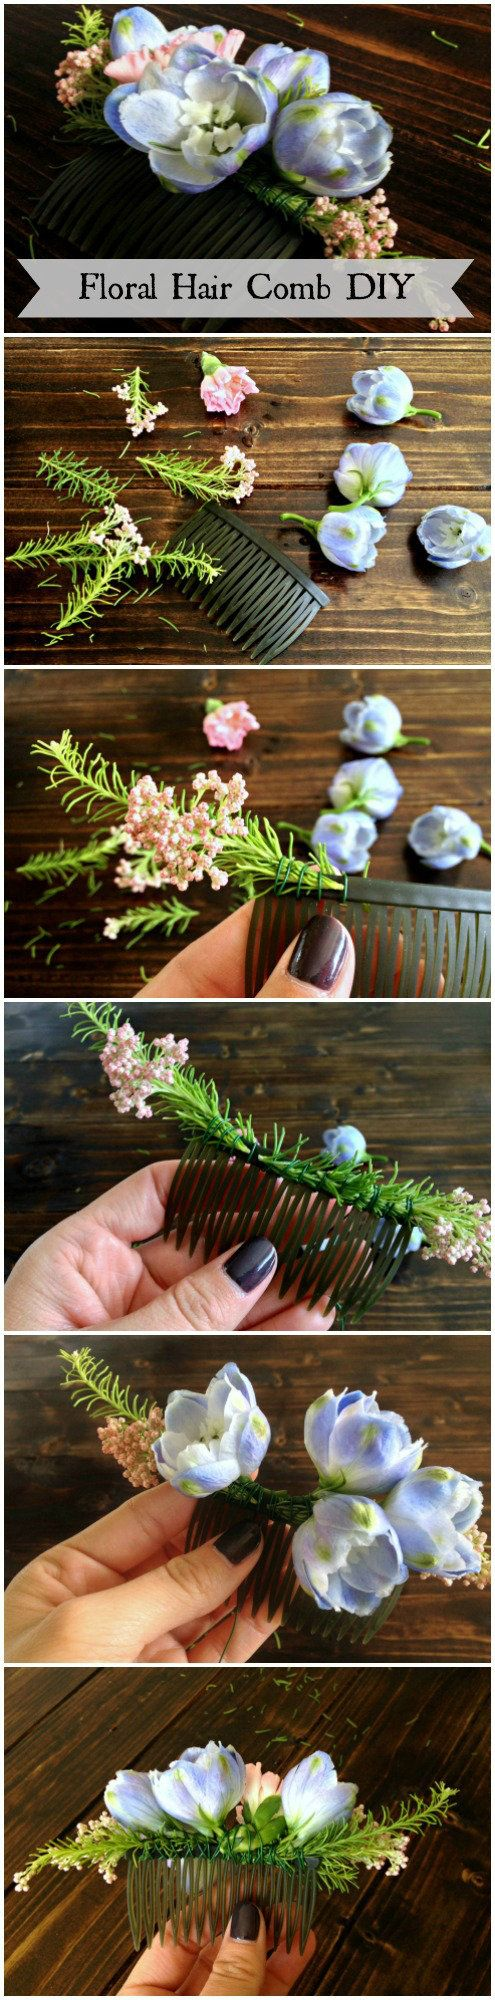 flowers-speak-louder | Floral Hair Comb DIY